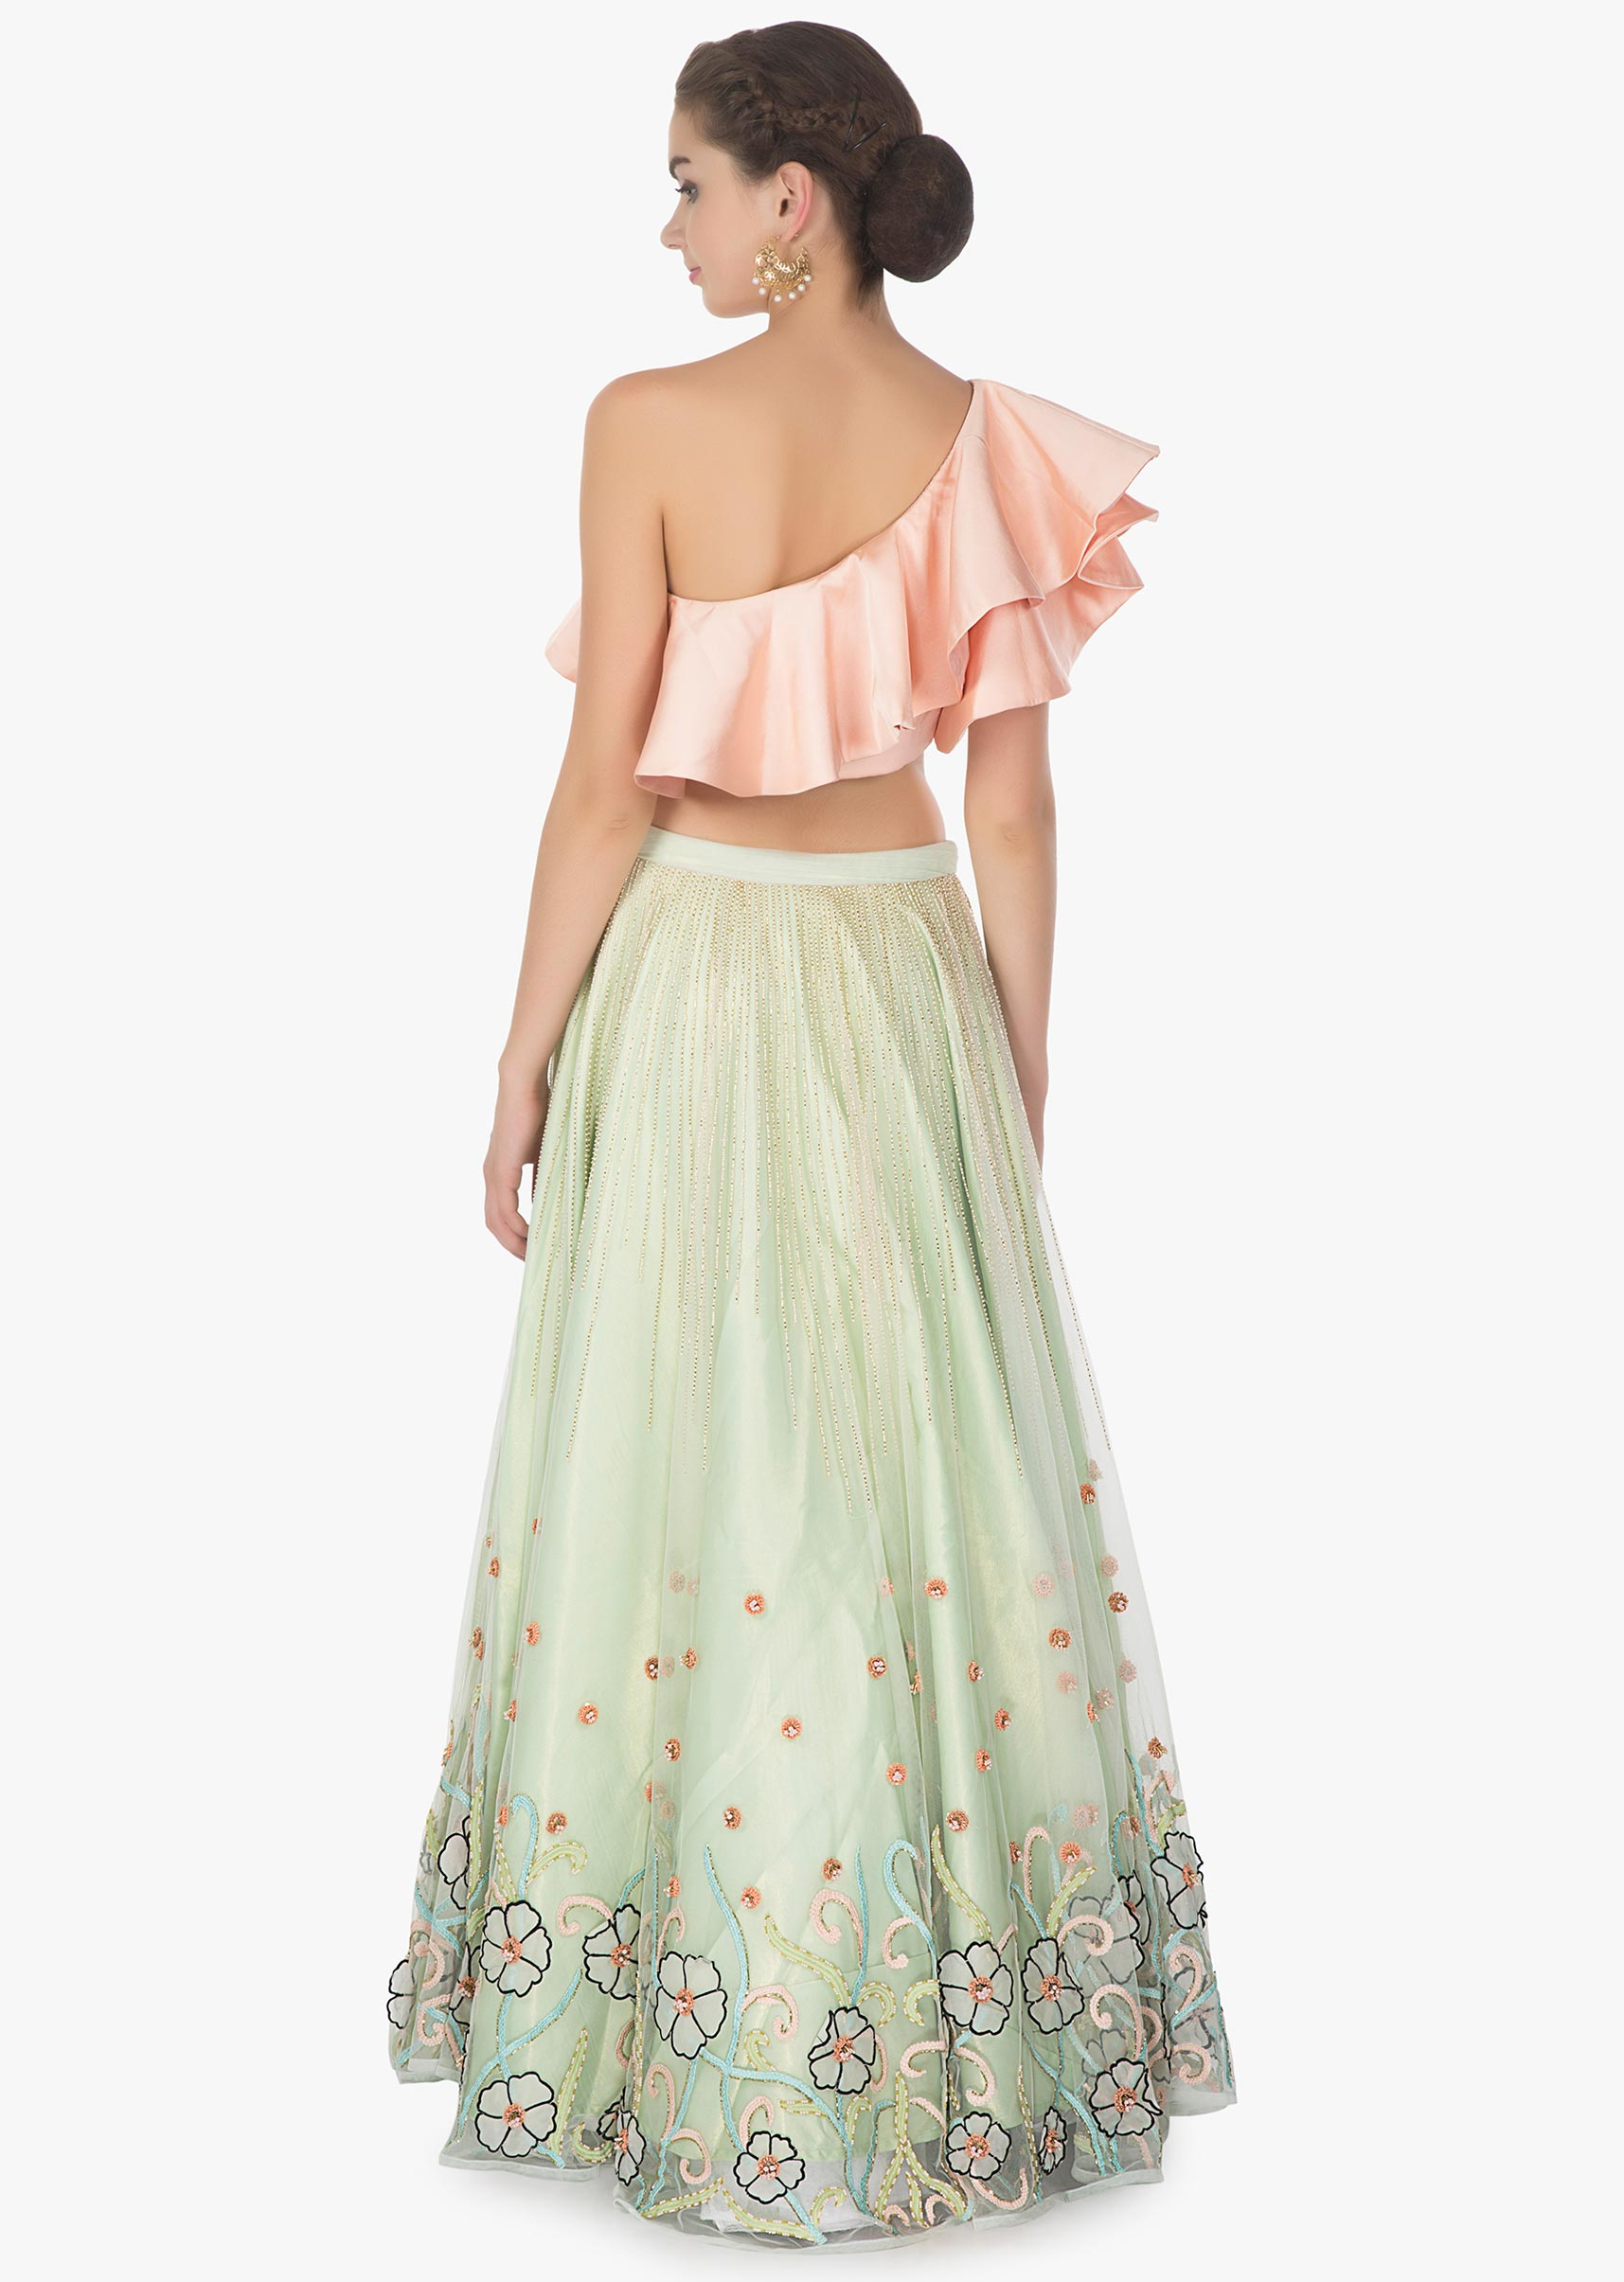 a8b83e5a4d374 One shoulder ruffled peach crop top paired with Pista green net skirt in 3  D flowers only ...